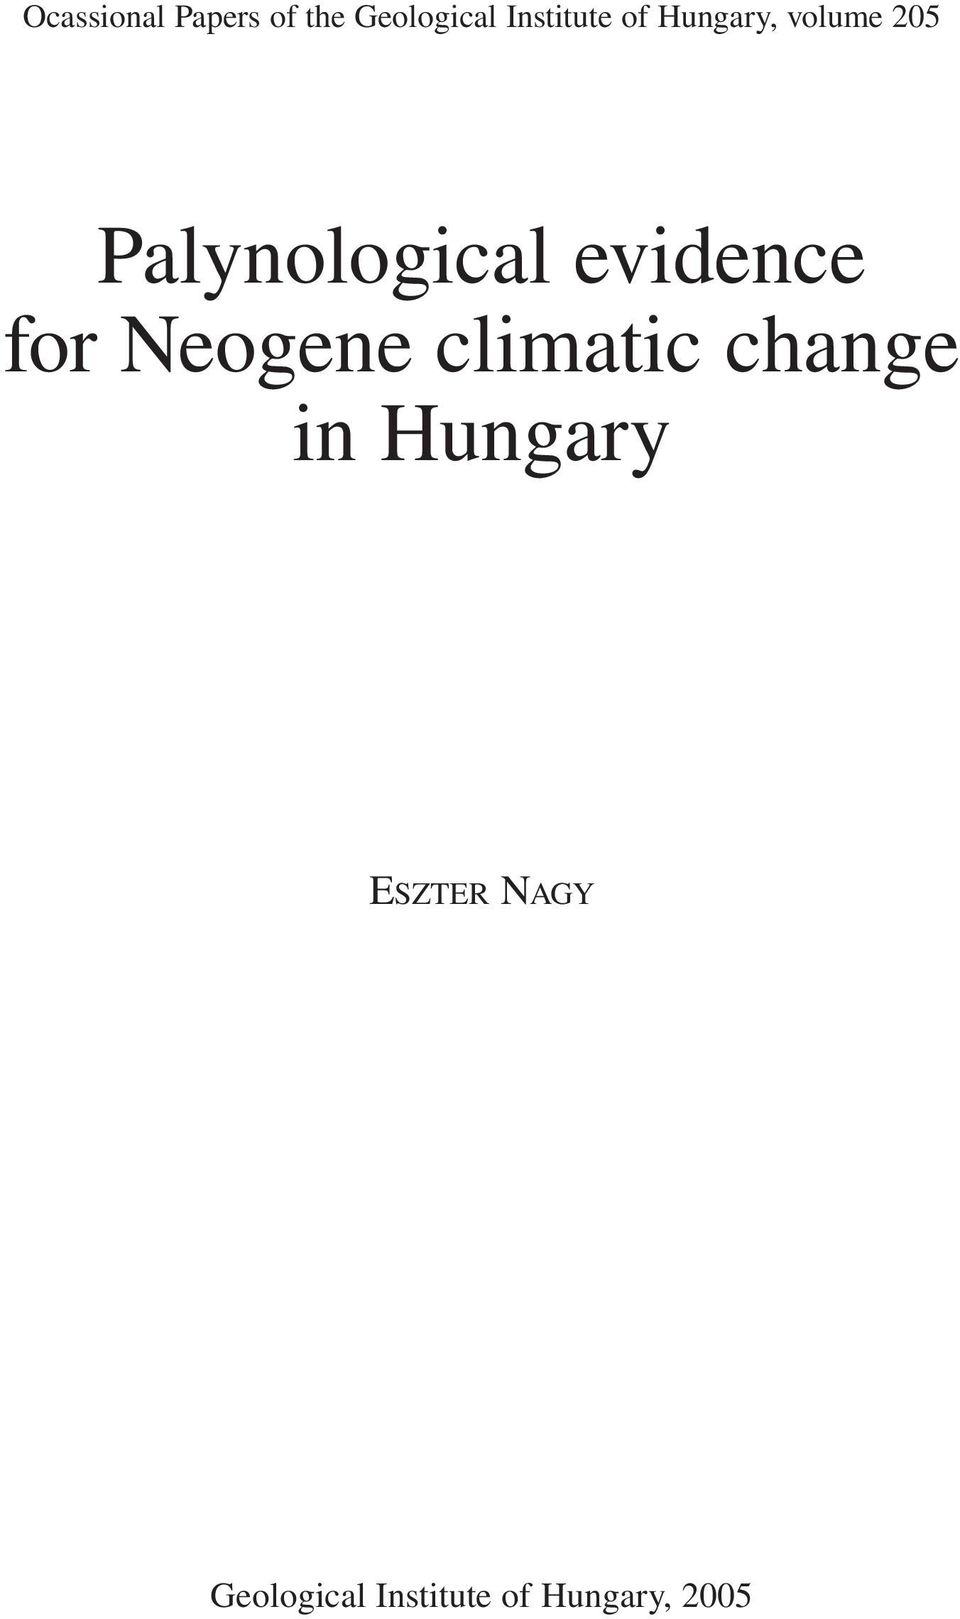 Palynological evidence for Neogene climatic